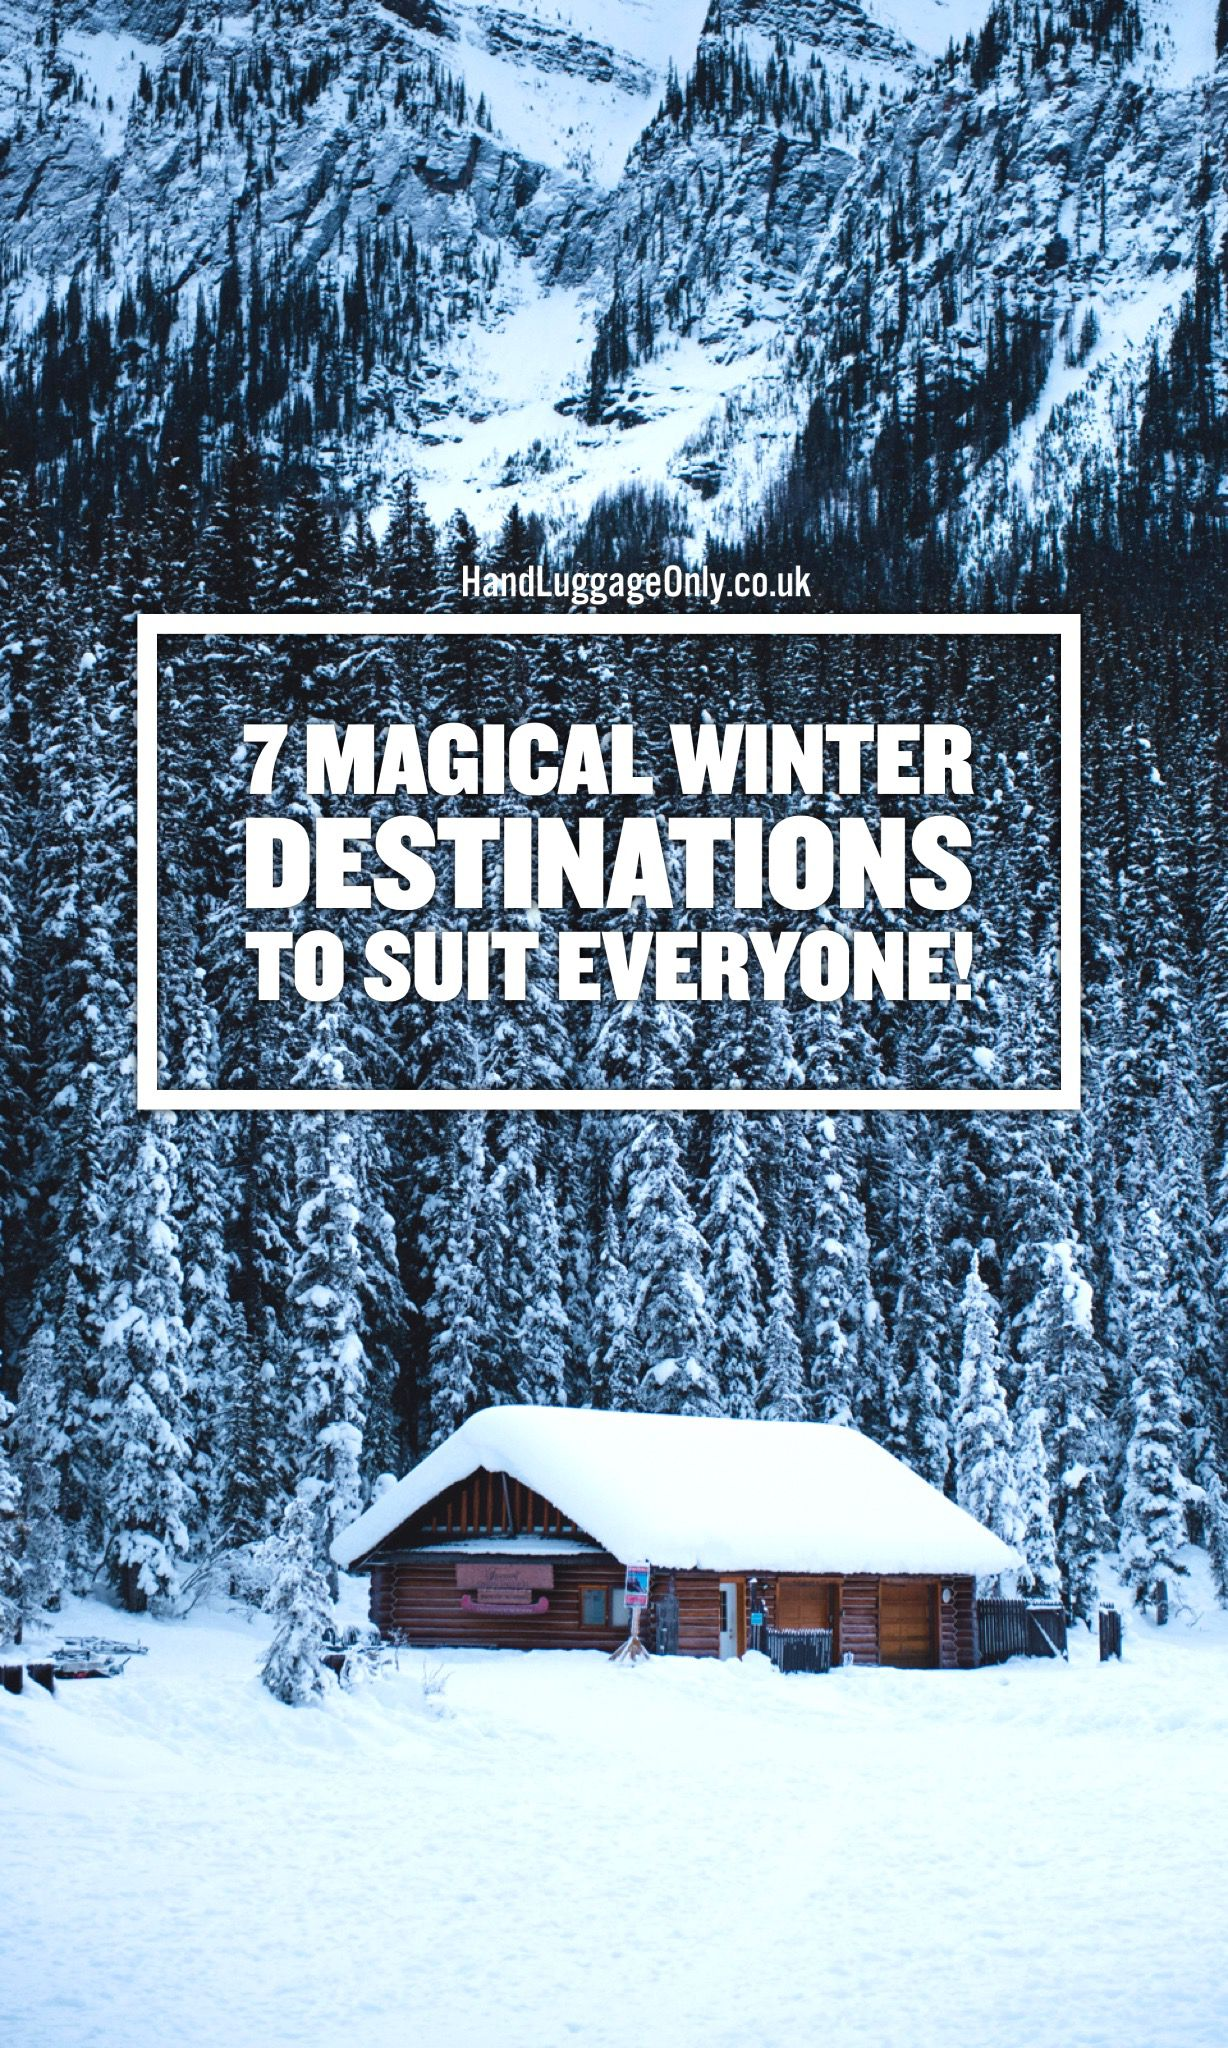 7 Magical Winter Destinations to Suit Everyone!